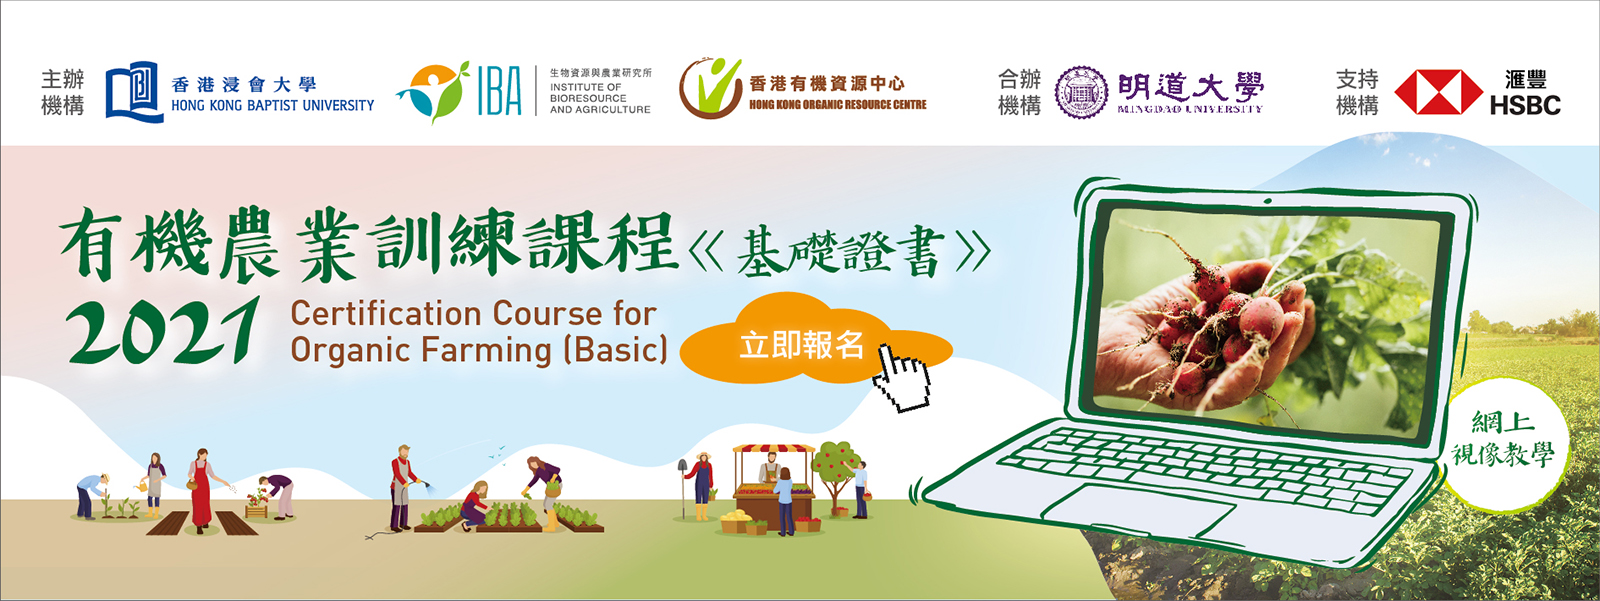 2021 Certification Basic Course for Organic Farming (Online course)